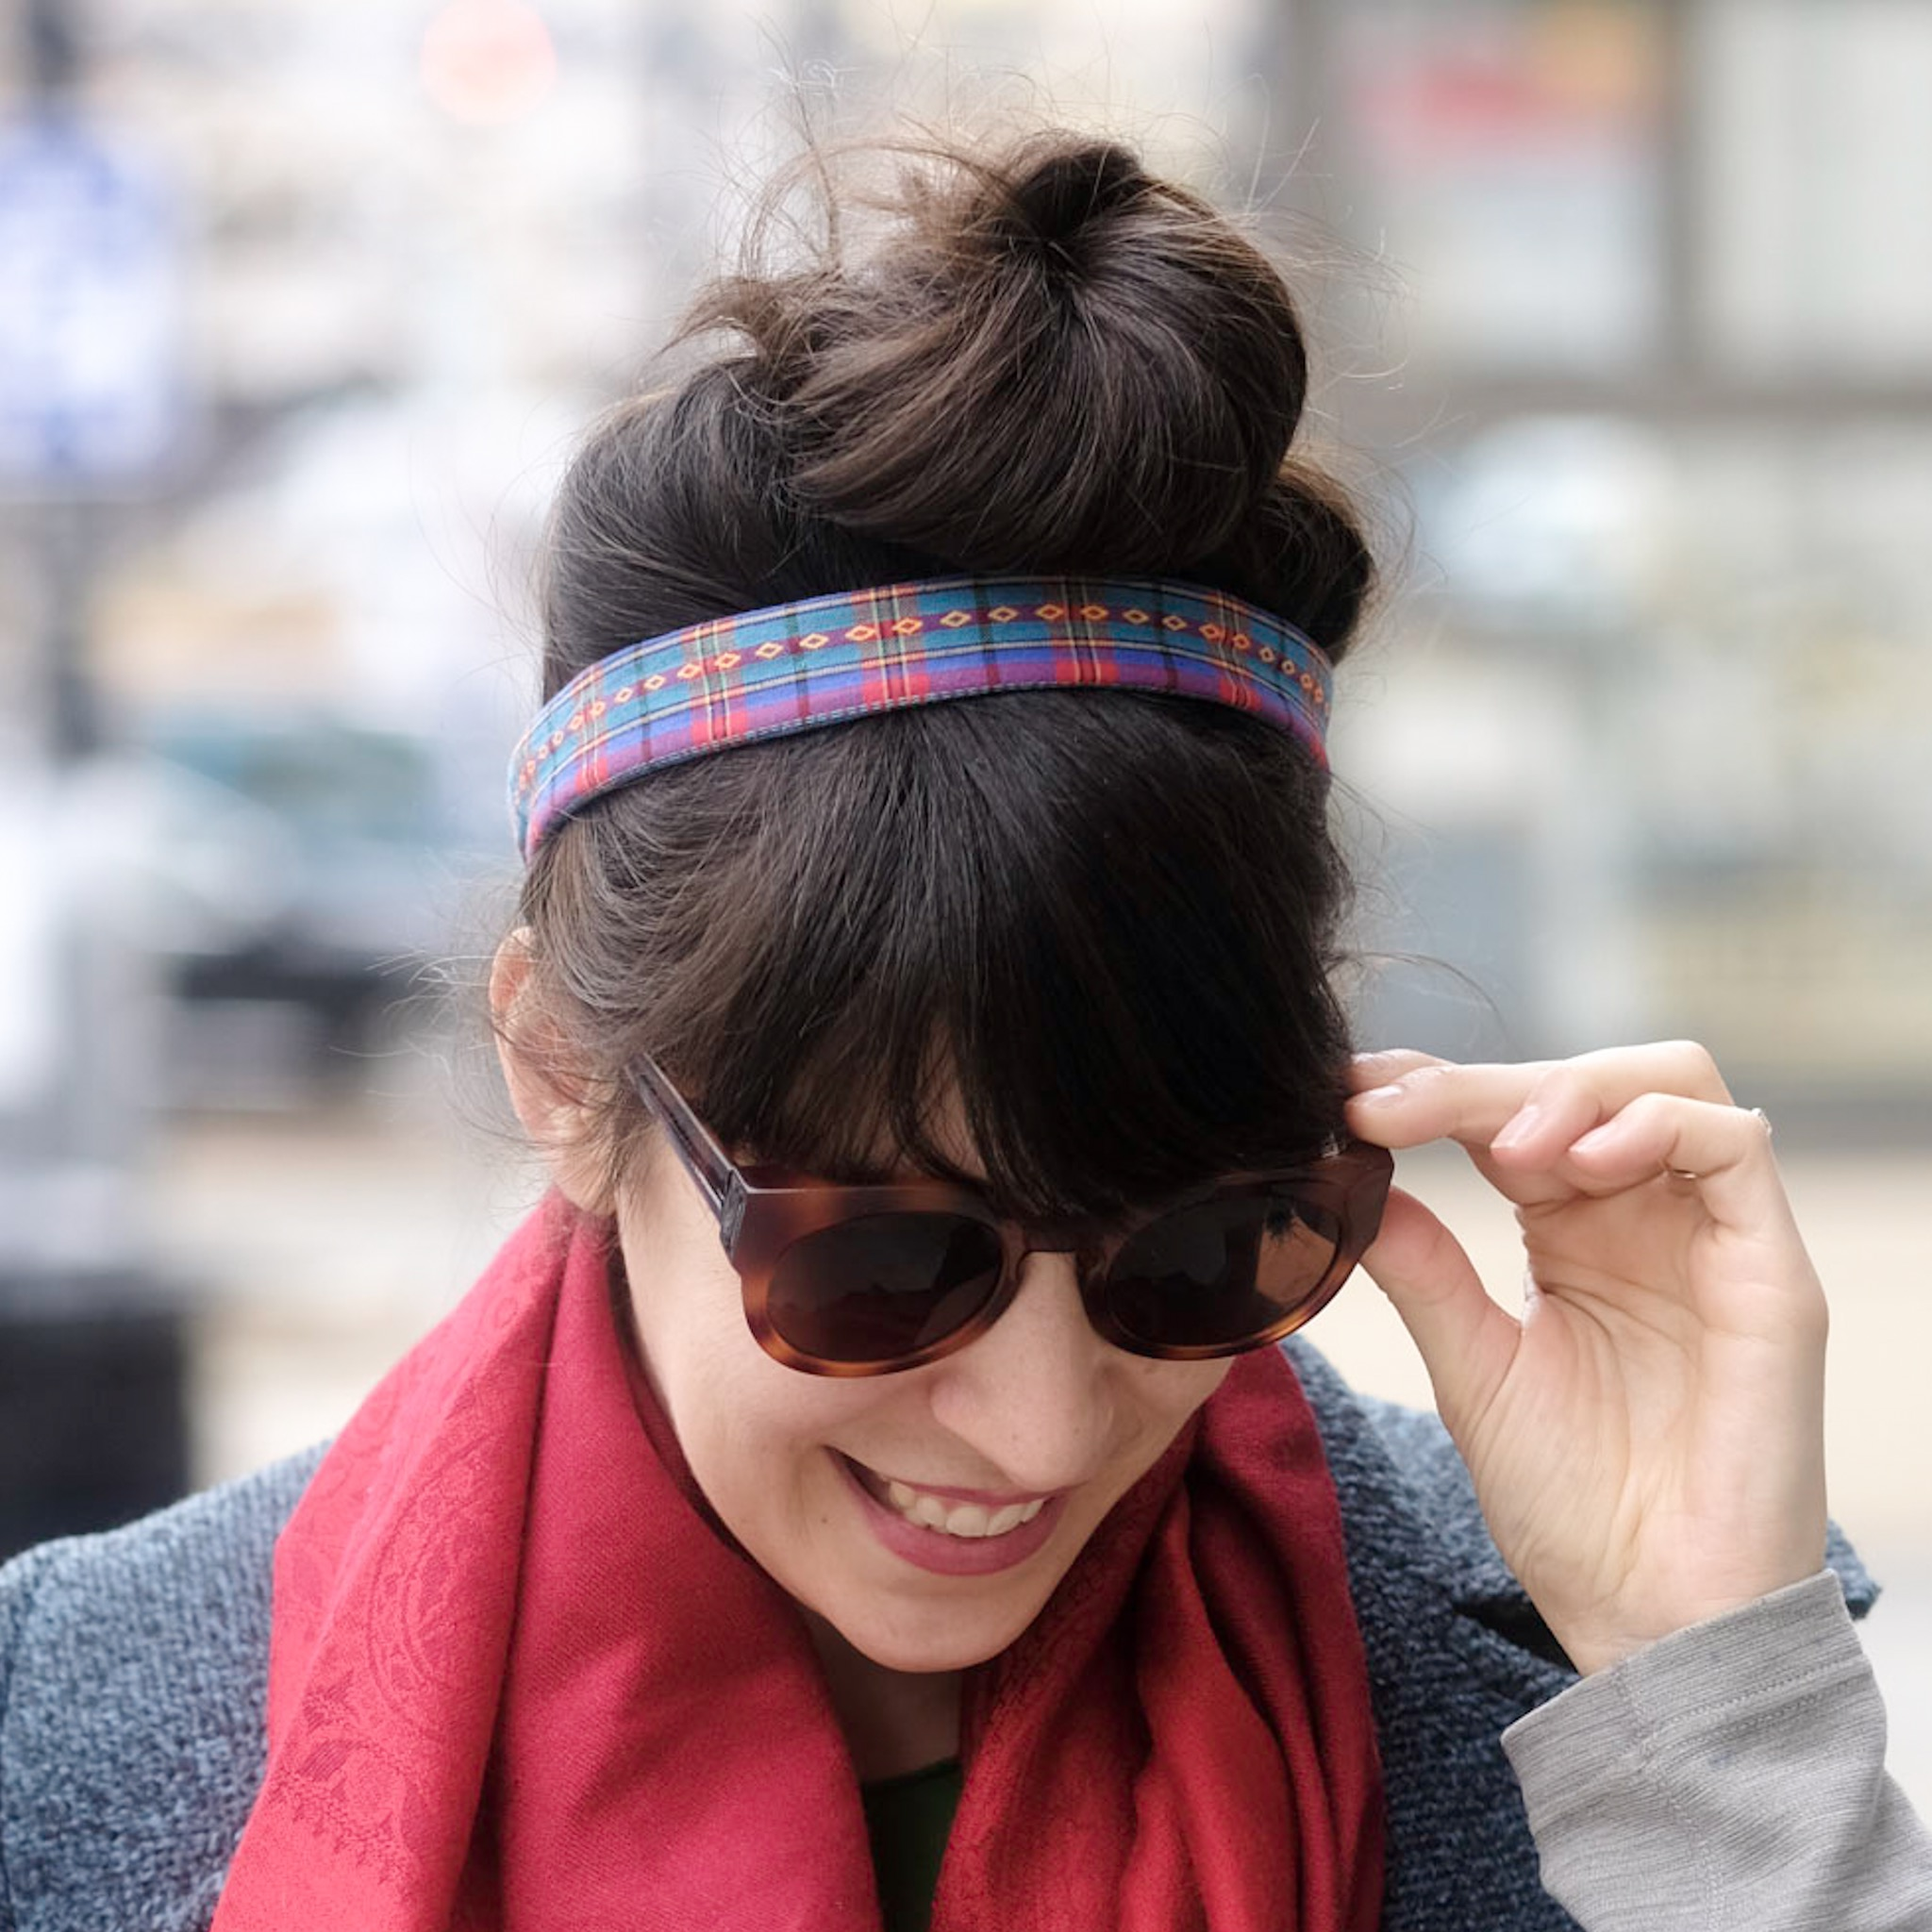 Beautiful woman smiling and looking down, while wearing a multicolor plaid wire-framed headband.